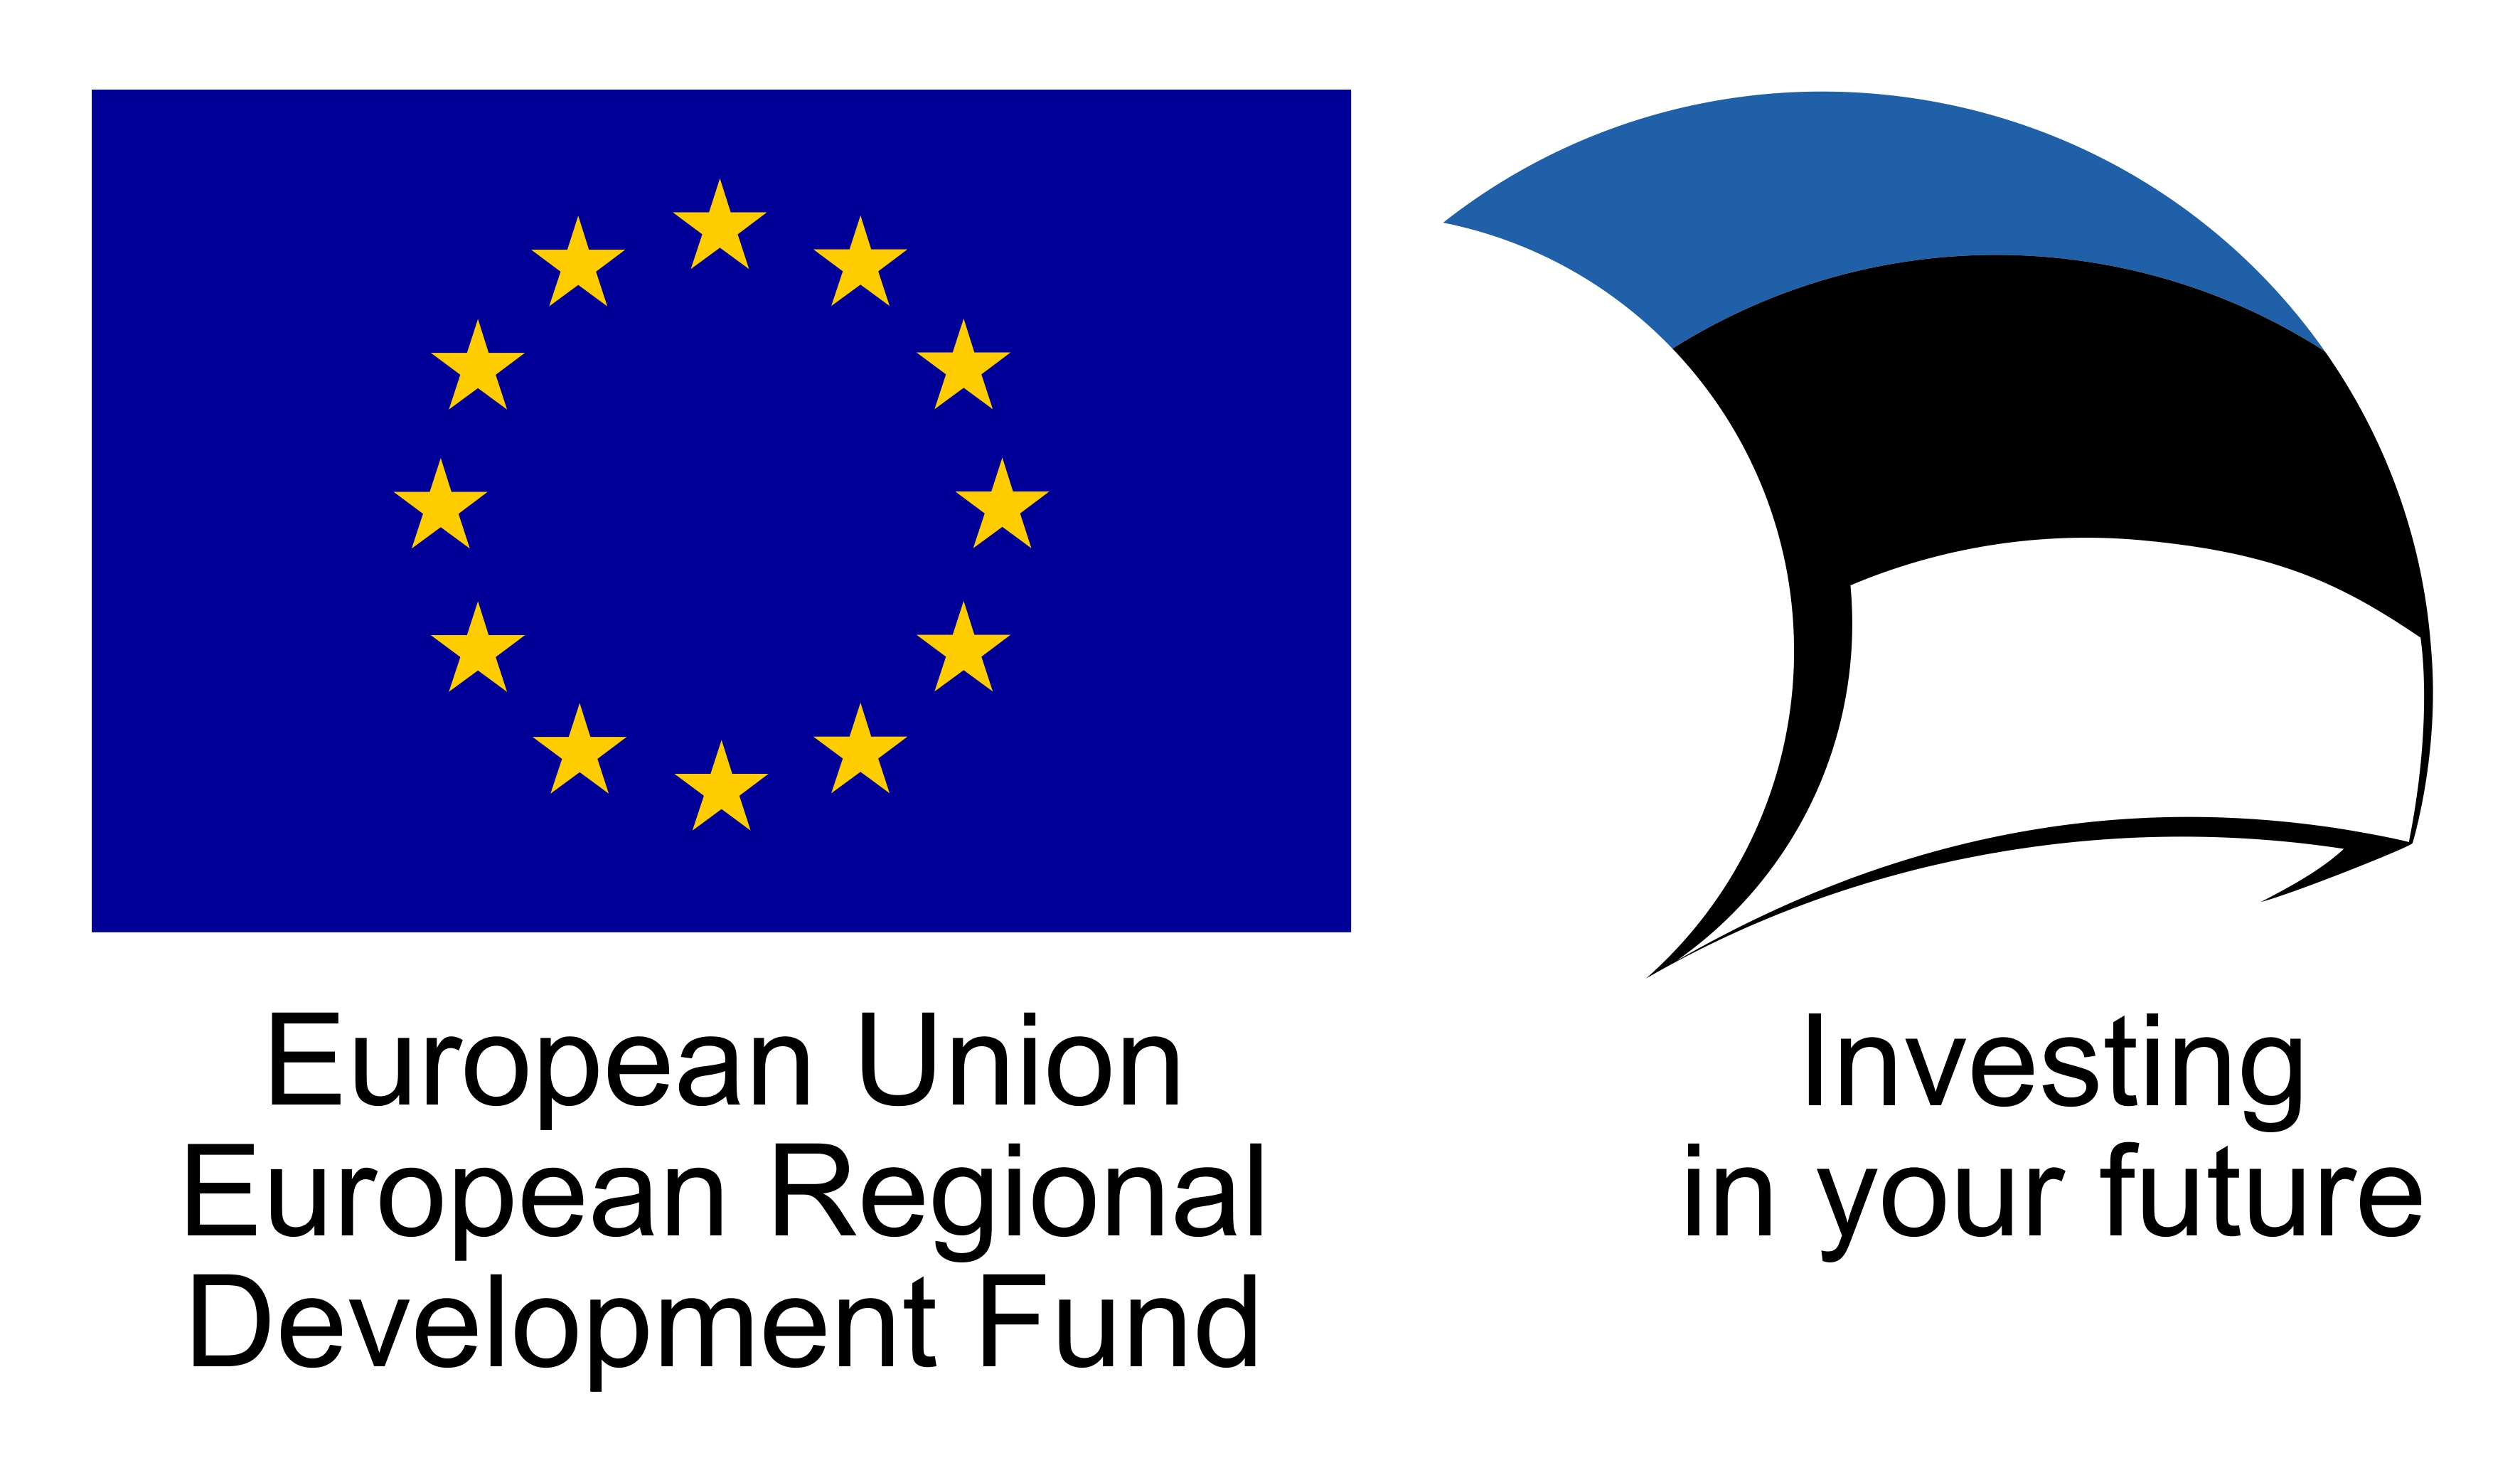 EU Regional-Development-Fund horizontal (2)